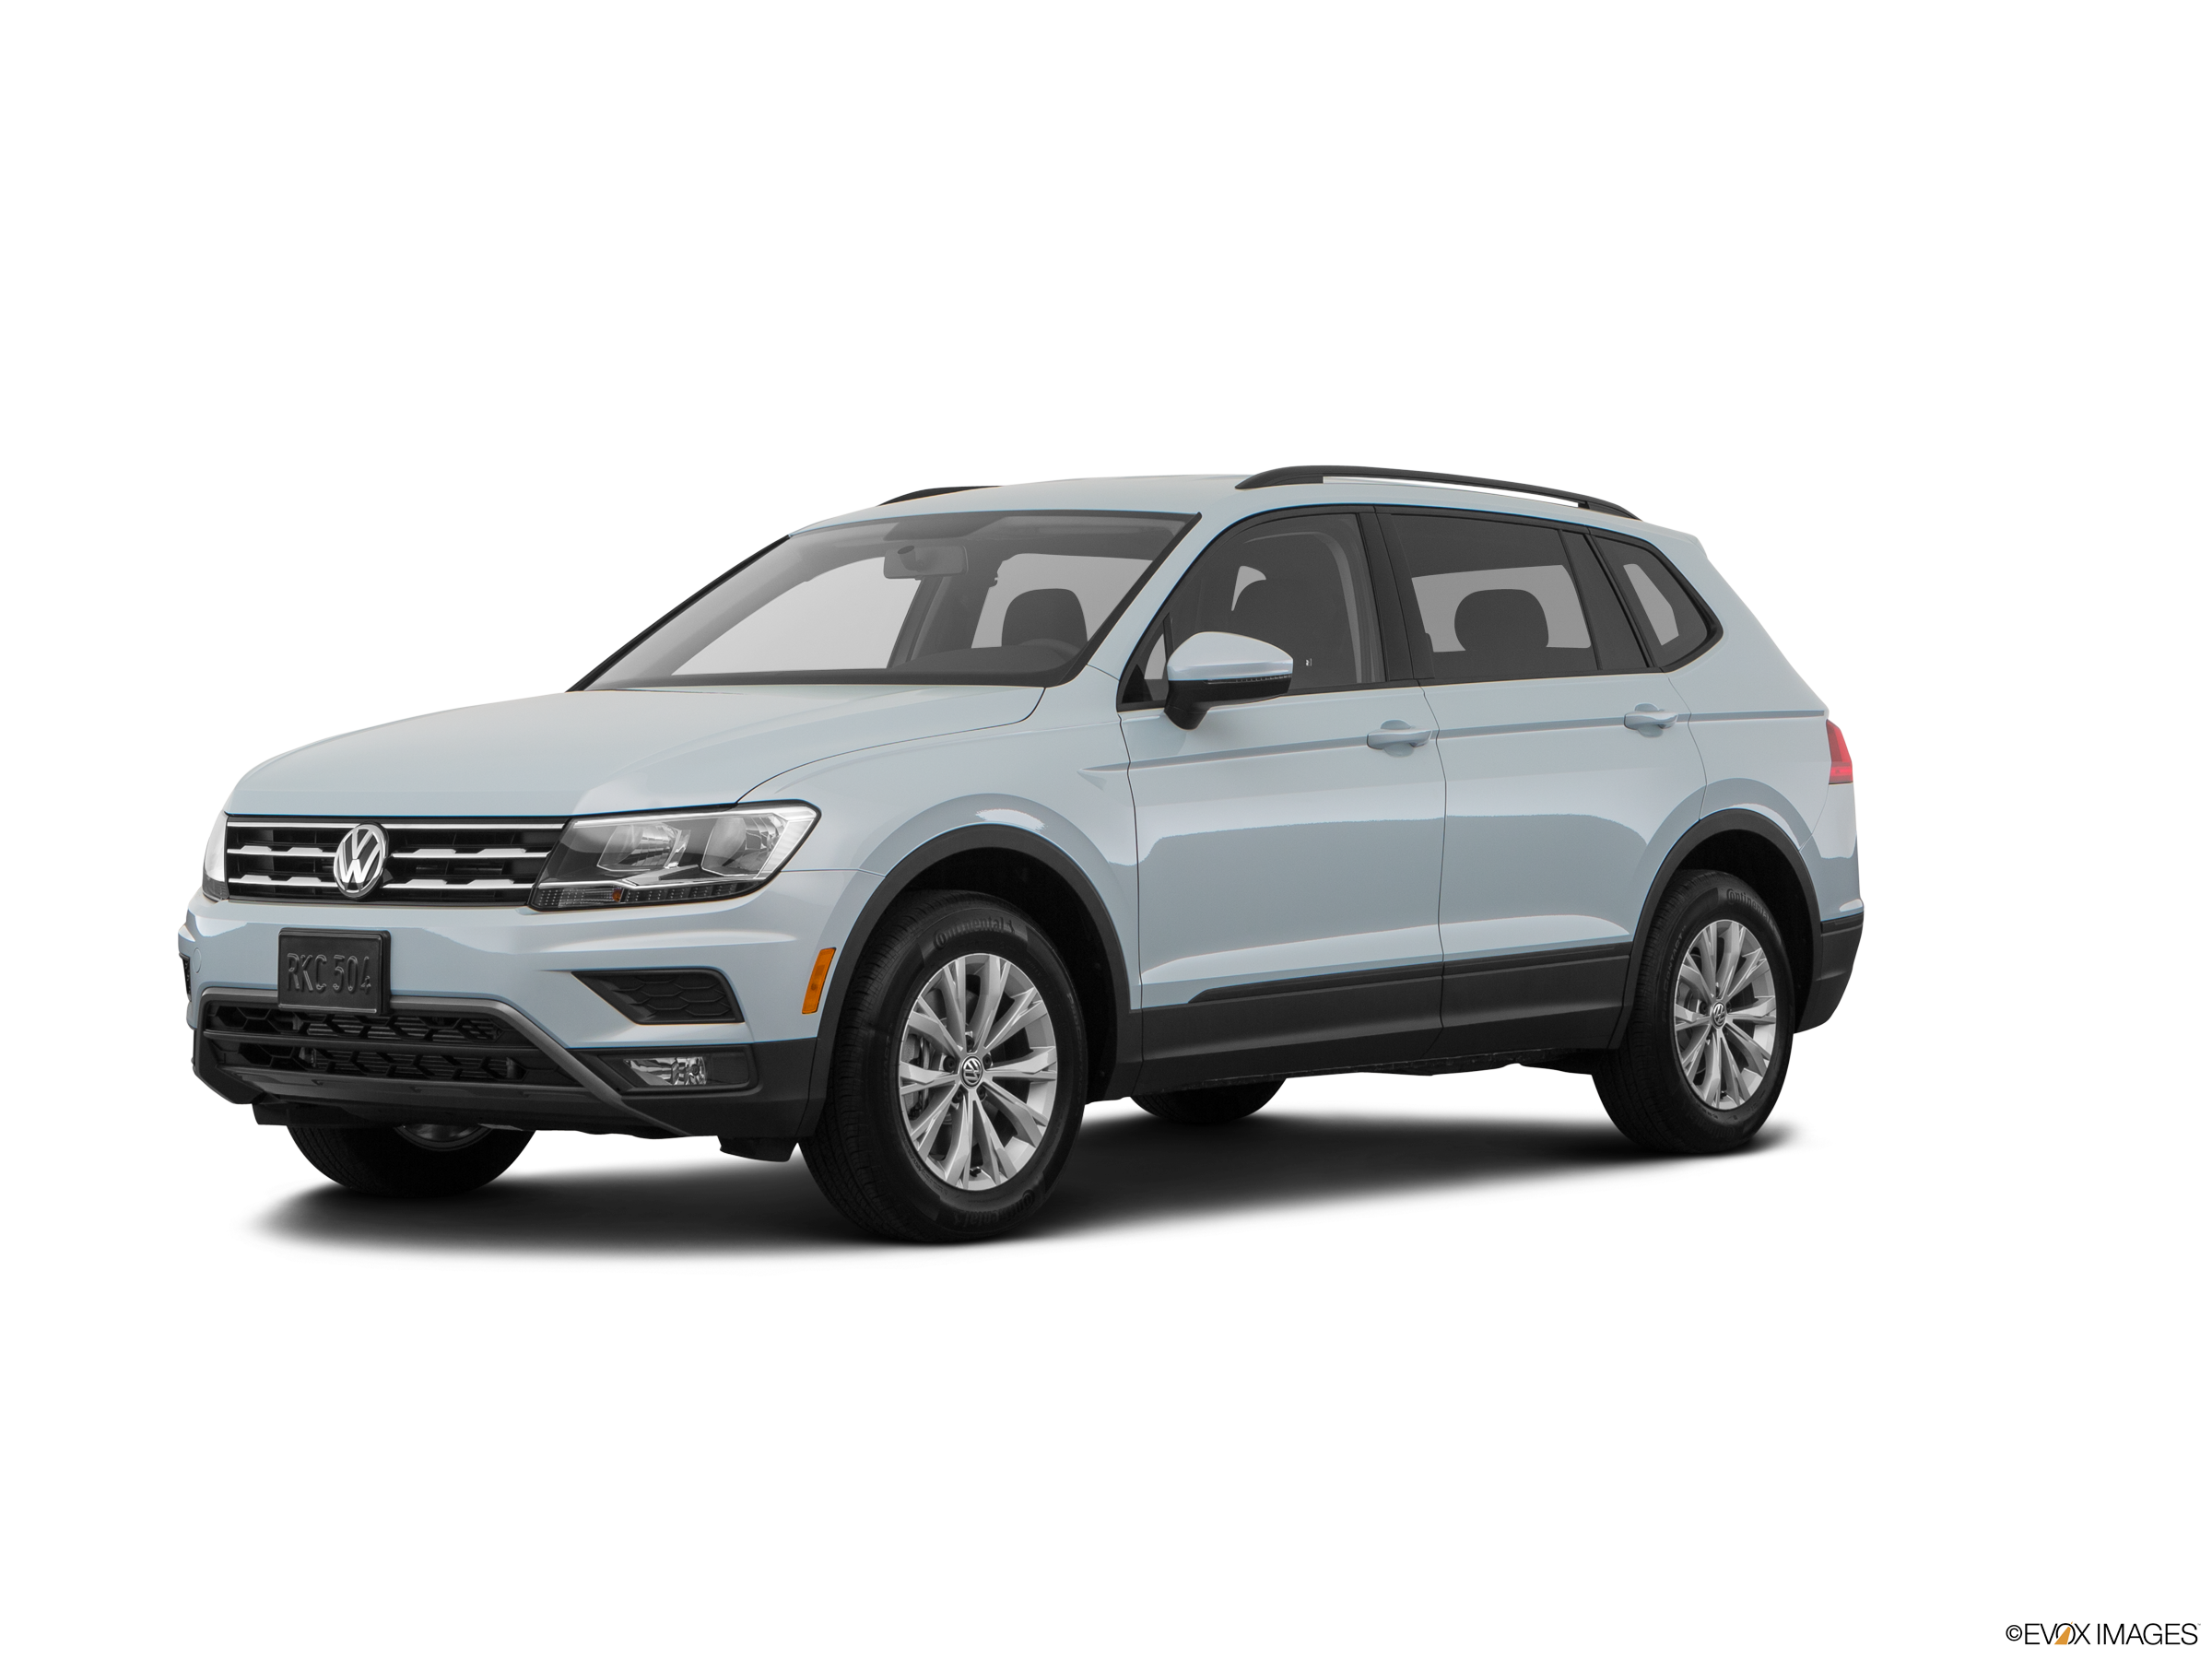 10 Best SUVs Under $25,000 - 2018 Volkswagen Tiguan